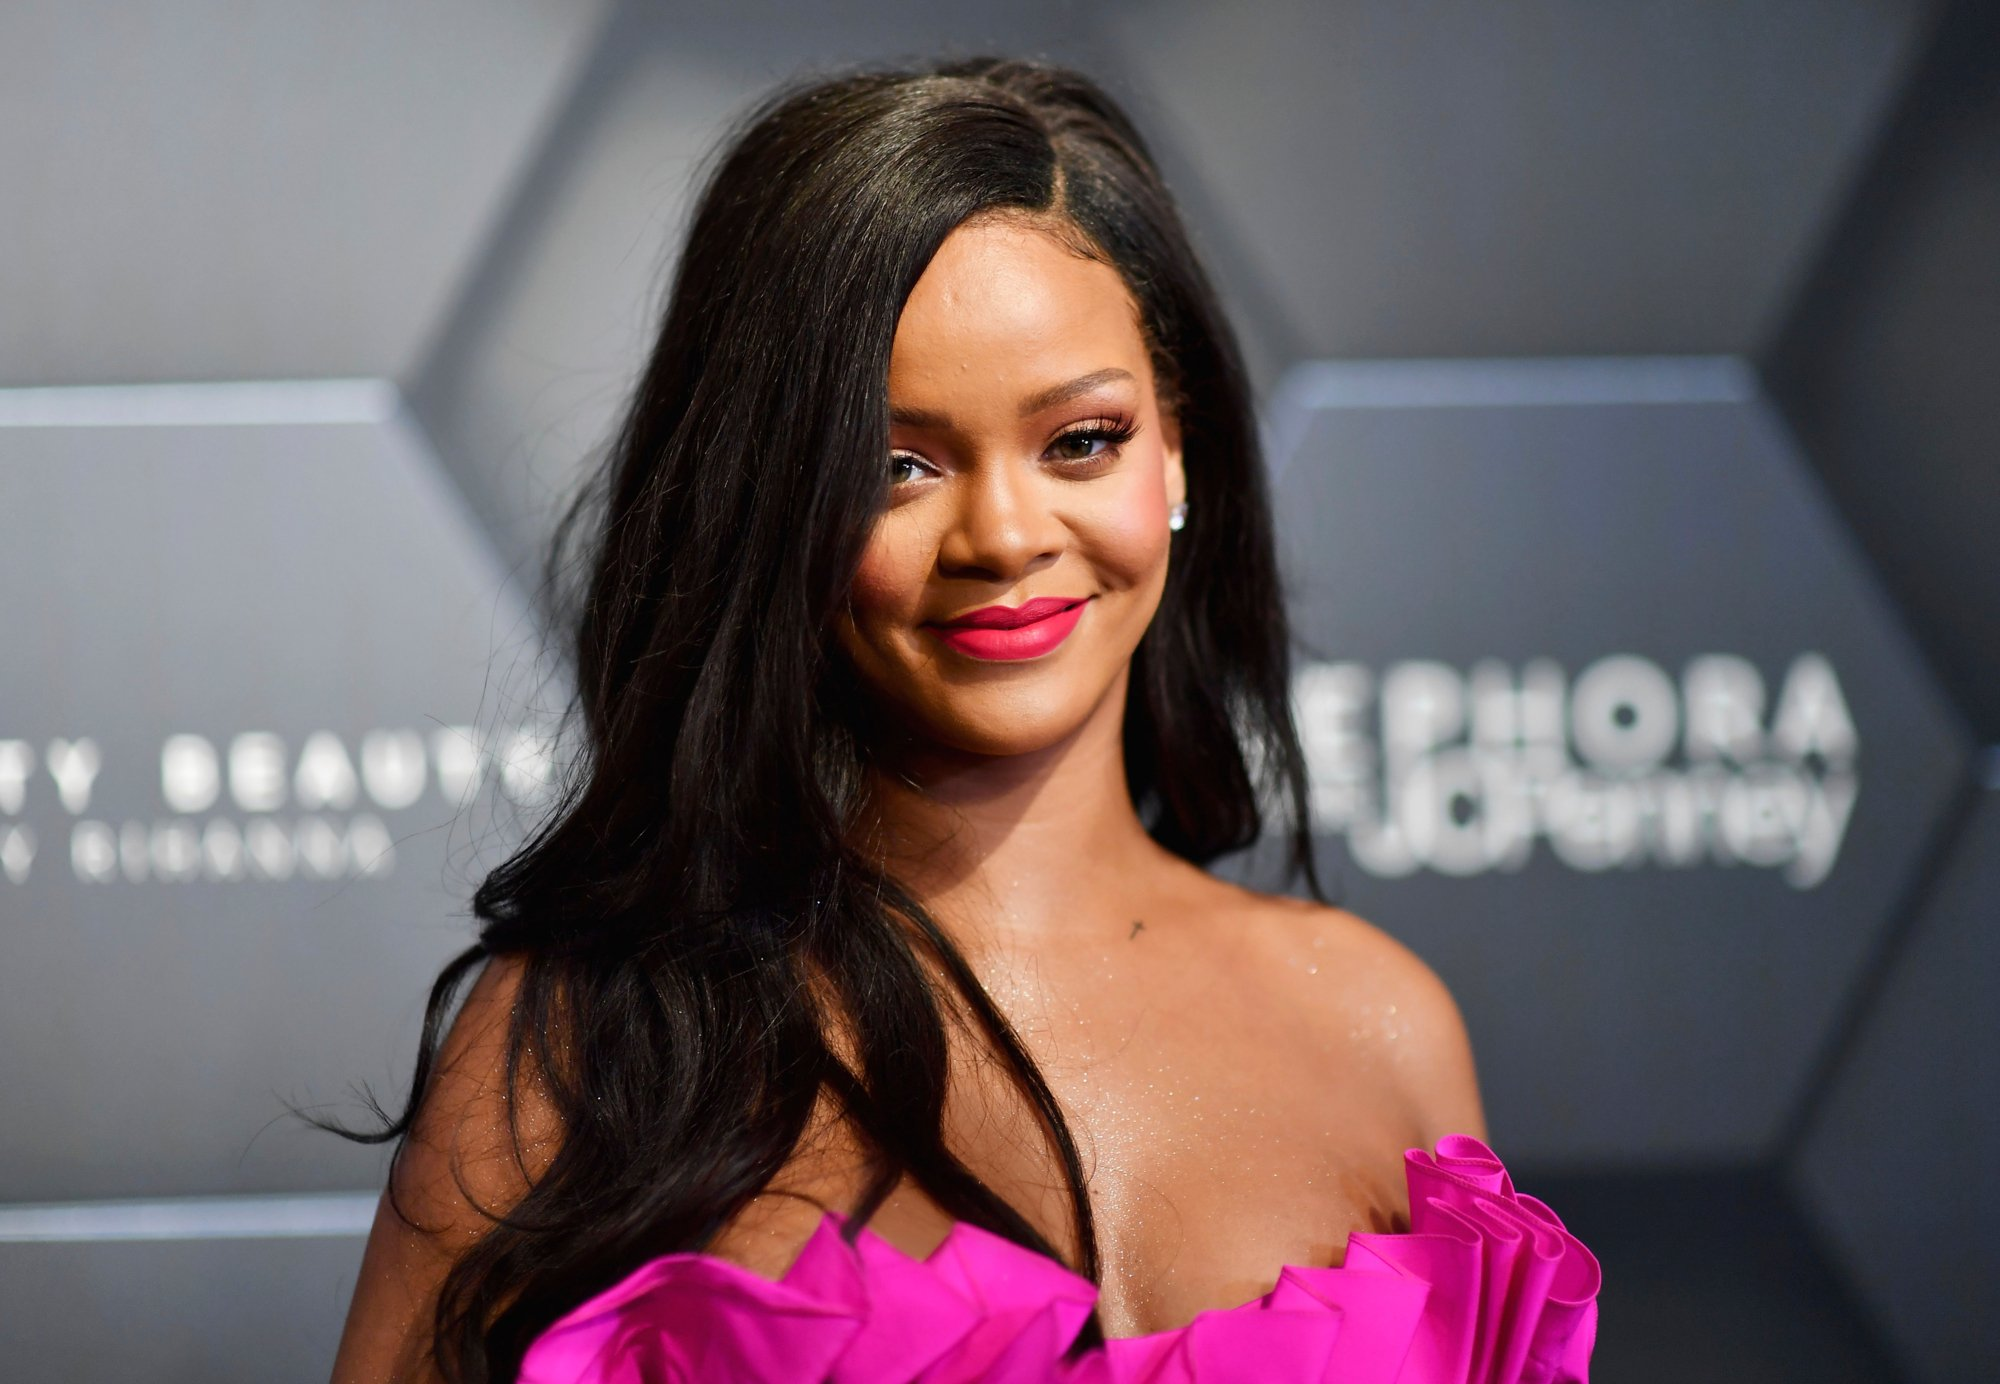 Rihanna Issues An Apology Following The Backlash She Received After The Savage X Fenty Show